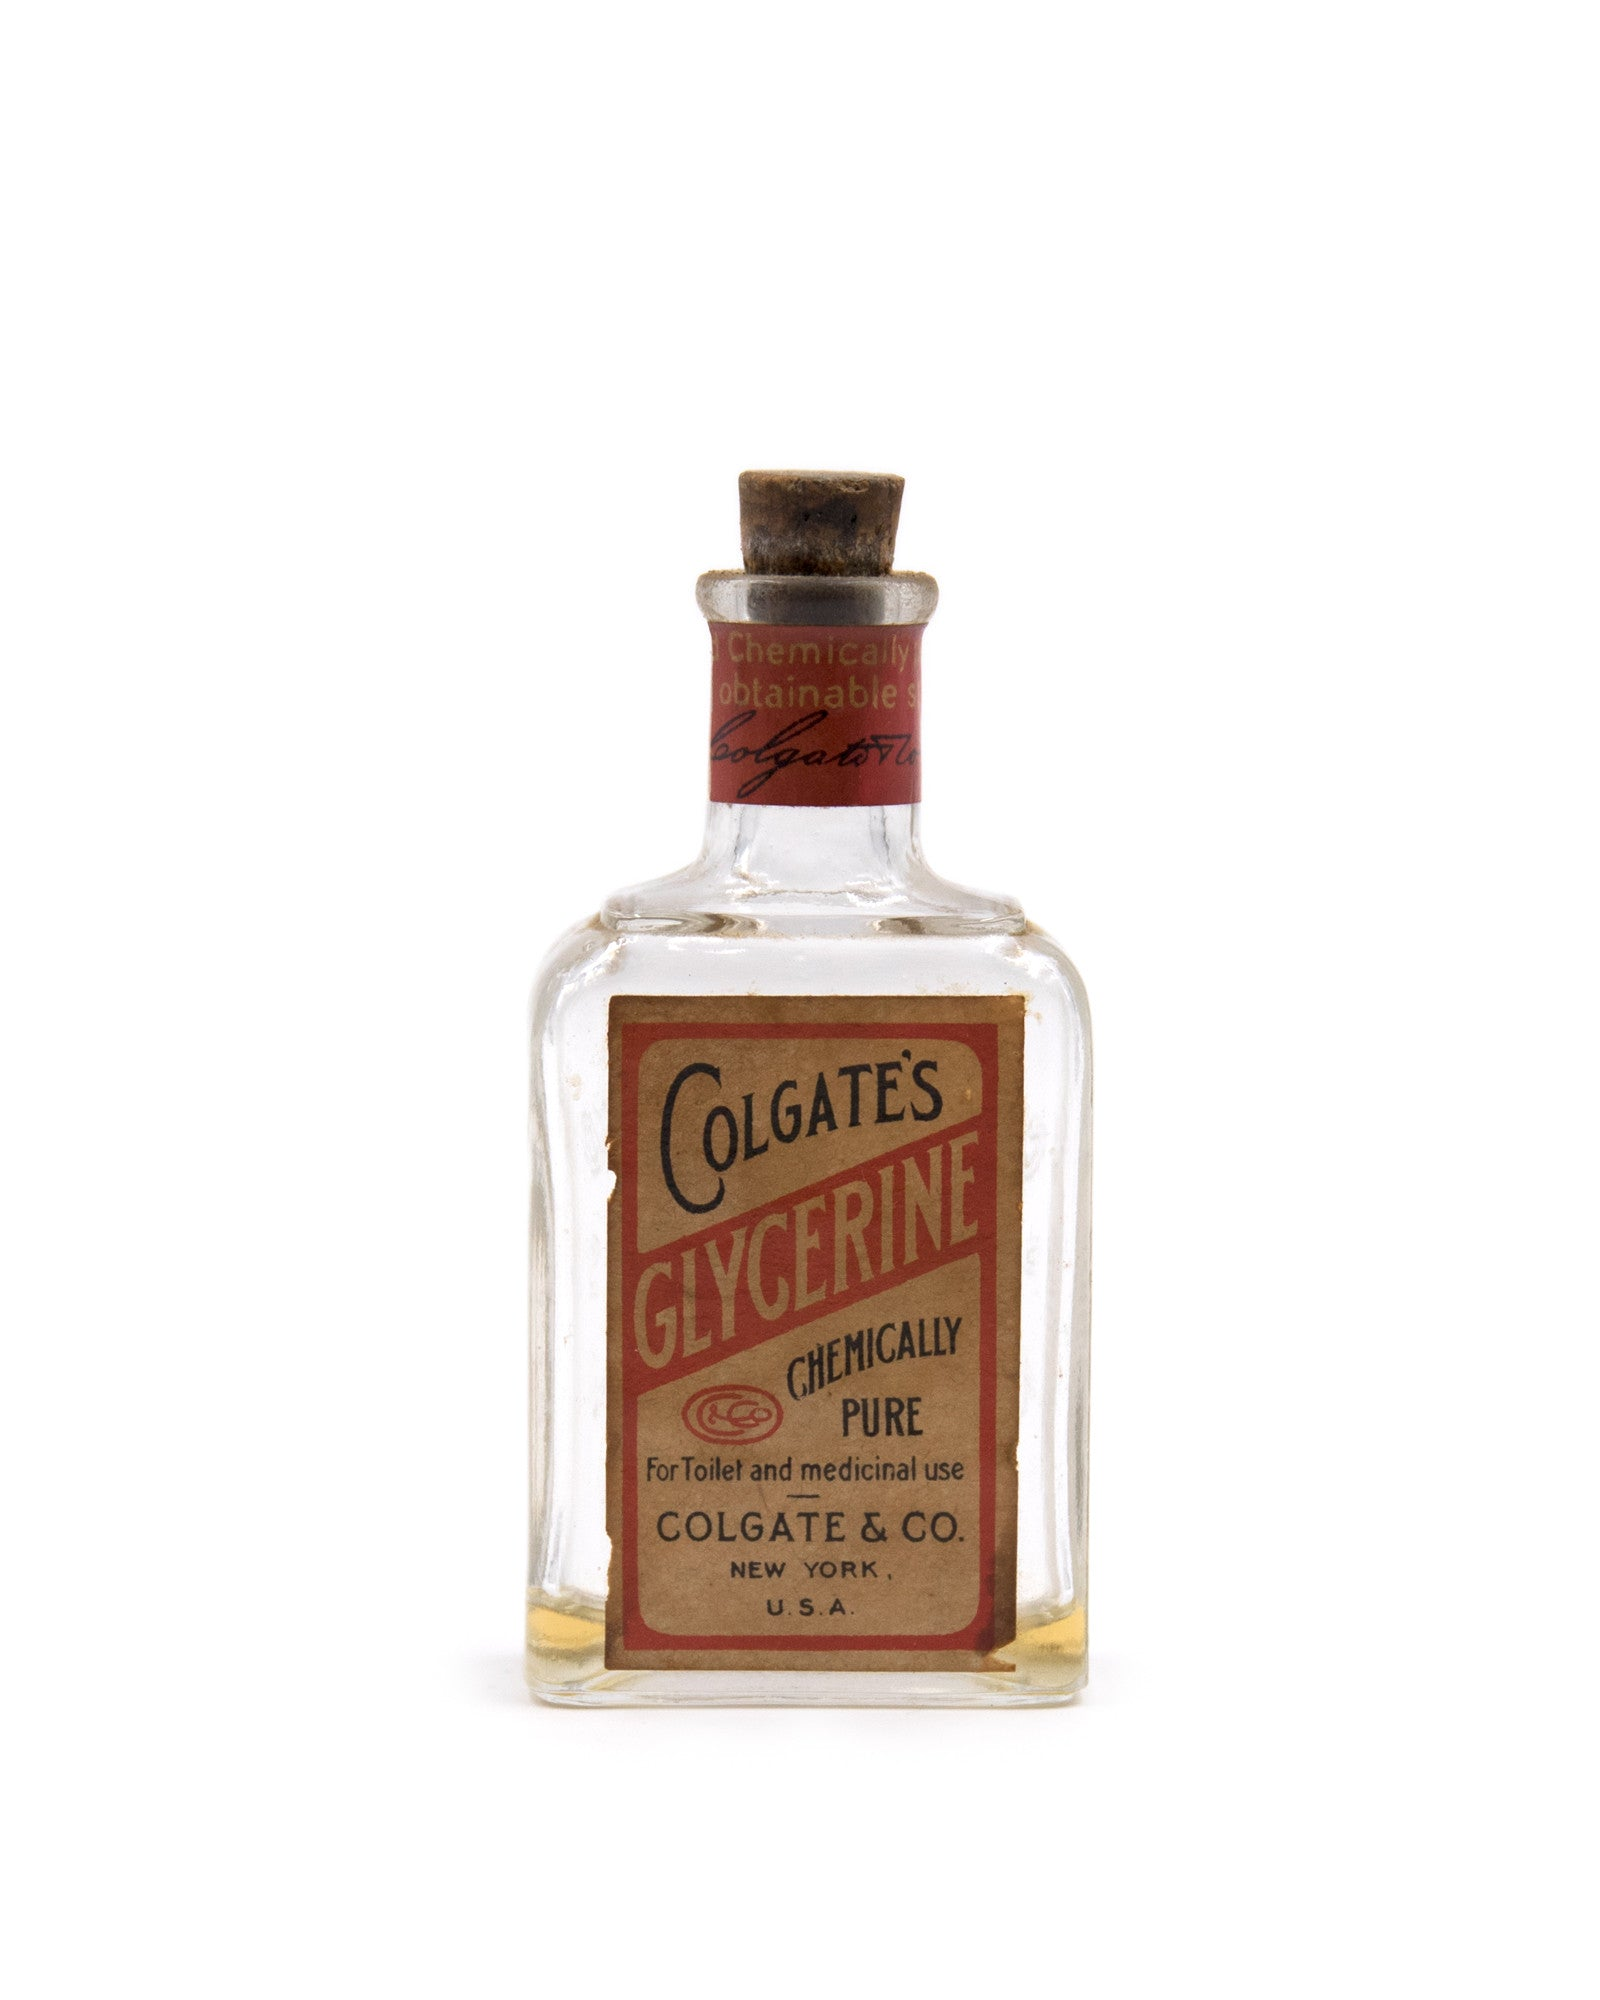 Glass Bottle - Colgate's Glycerine